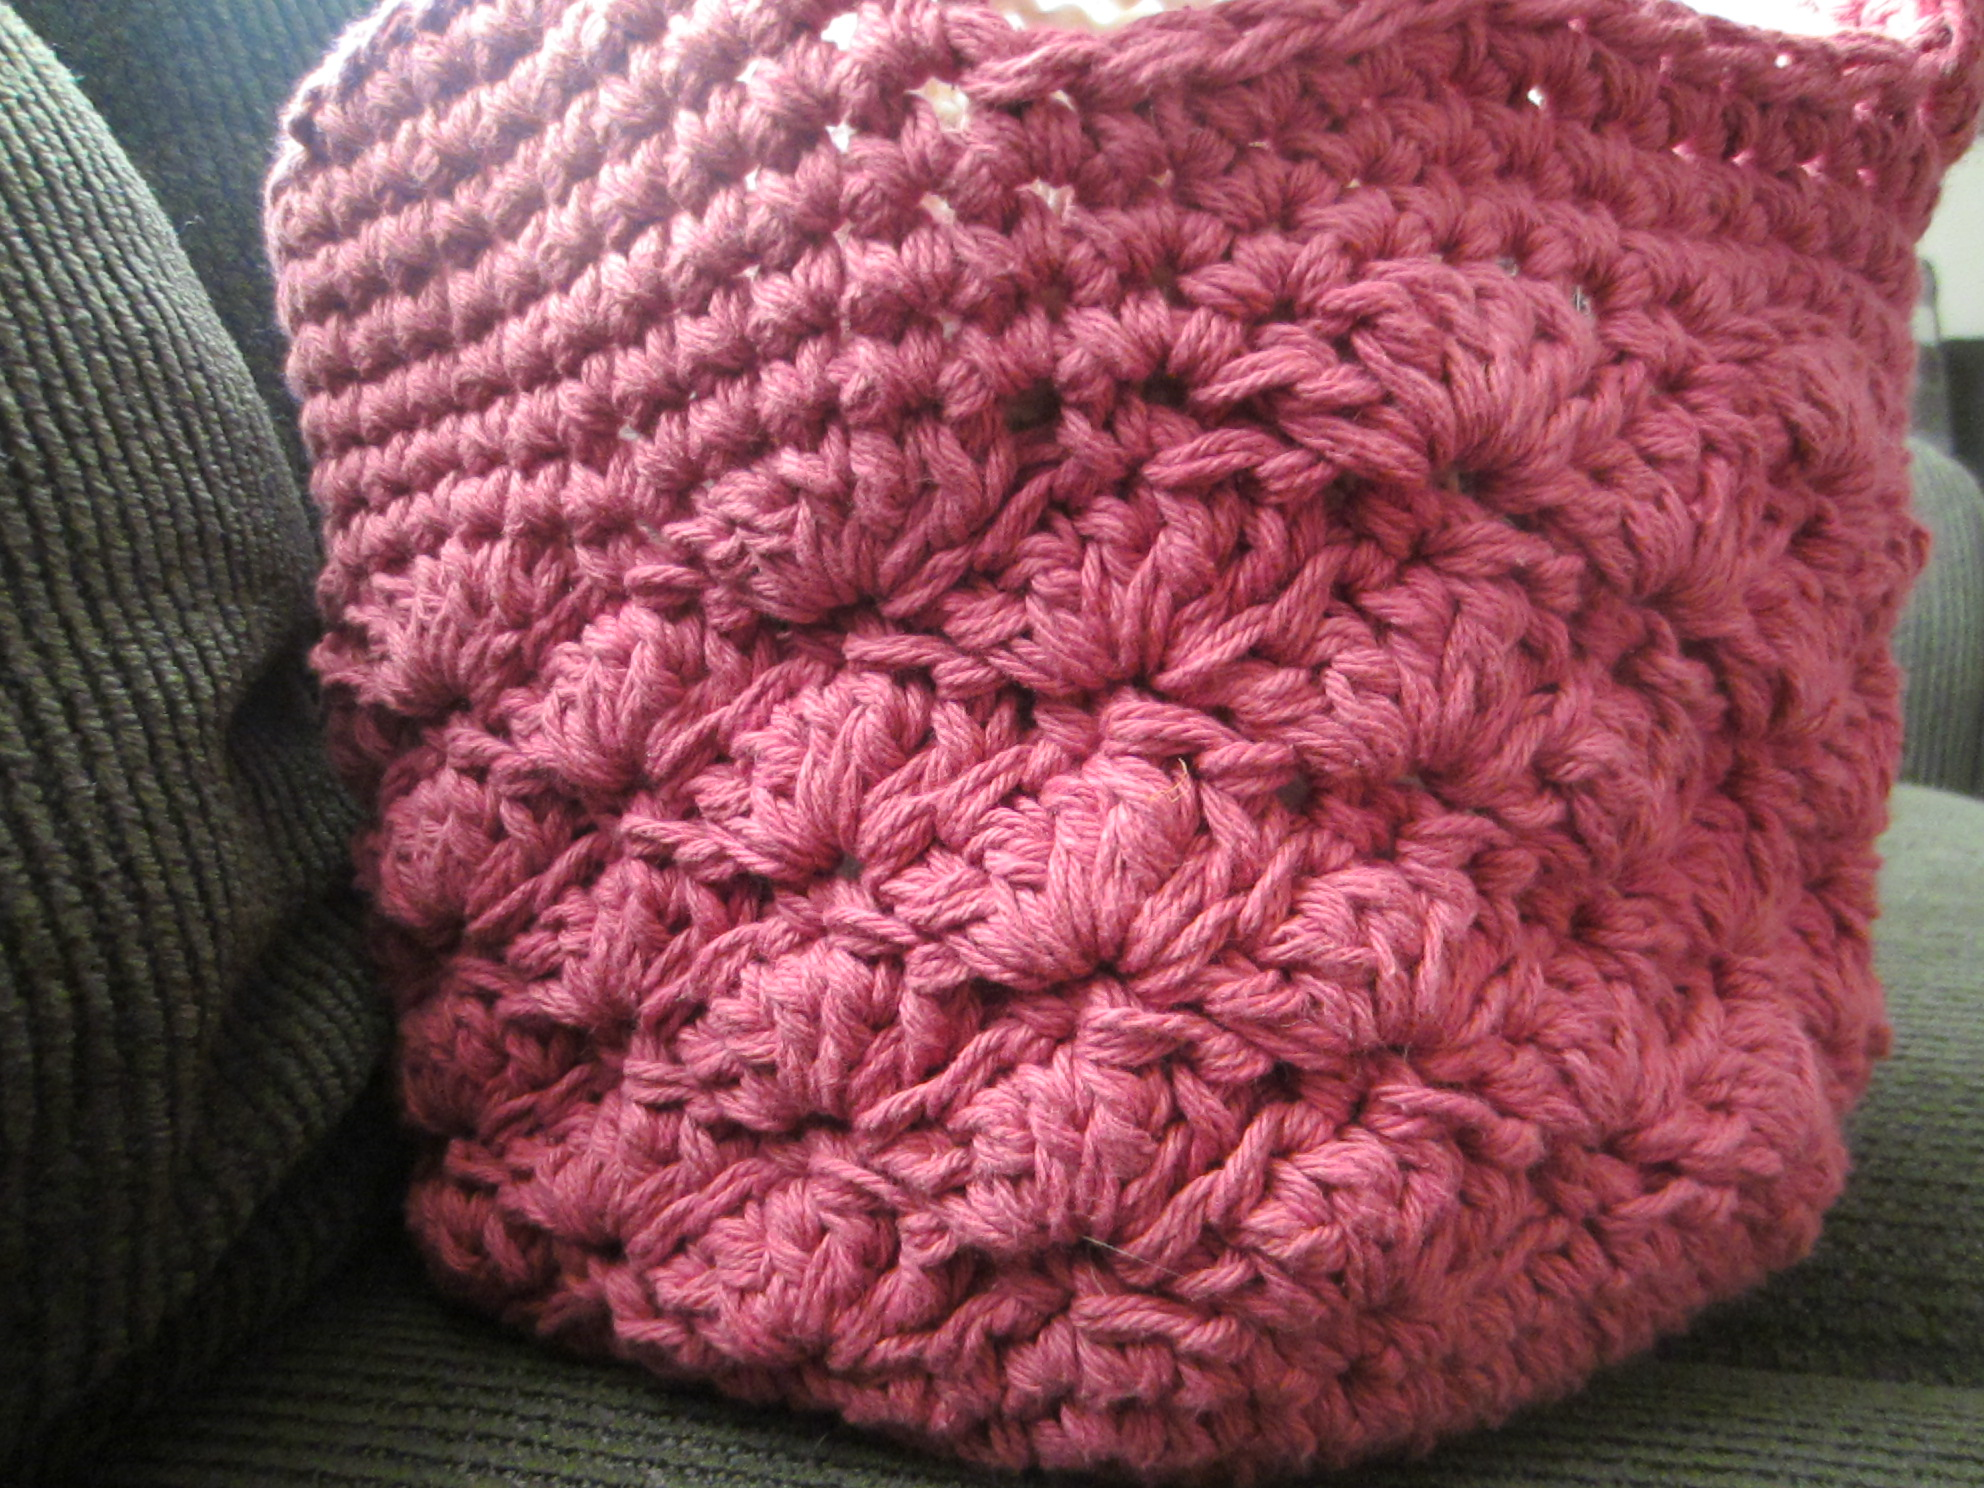 Crochet Yarn : By gmaellenscraftycorner Published April 26, 2013 Full size is ...